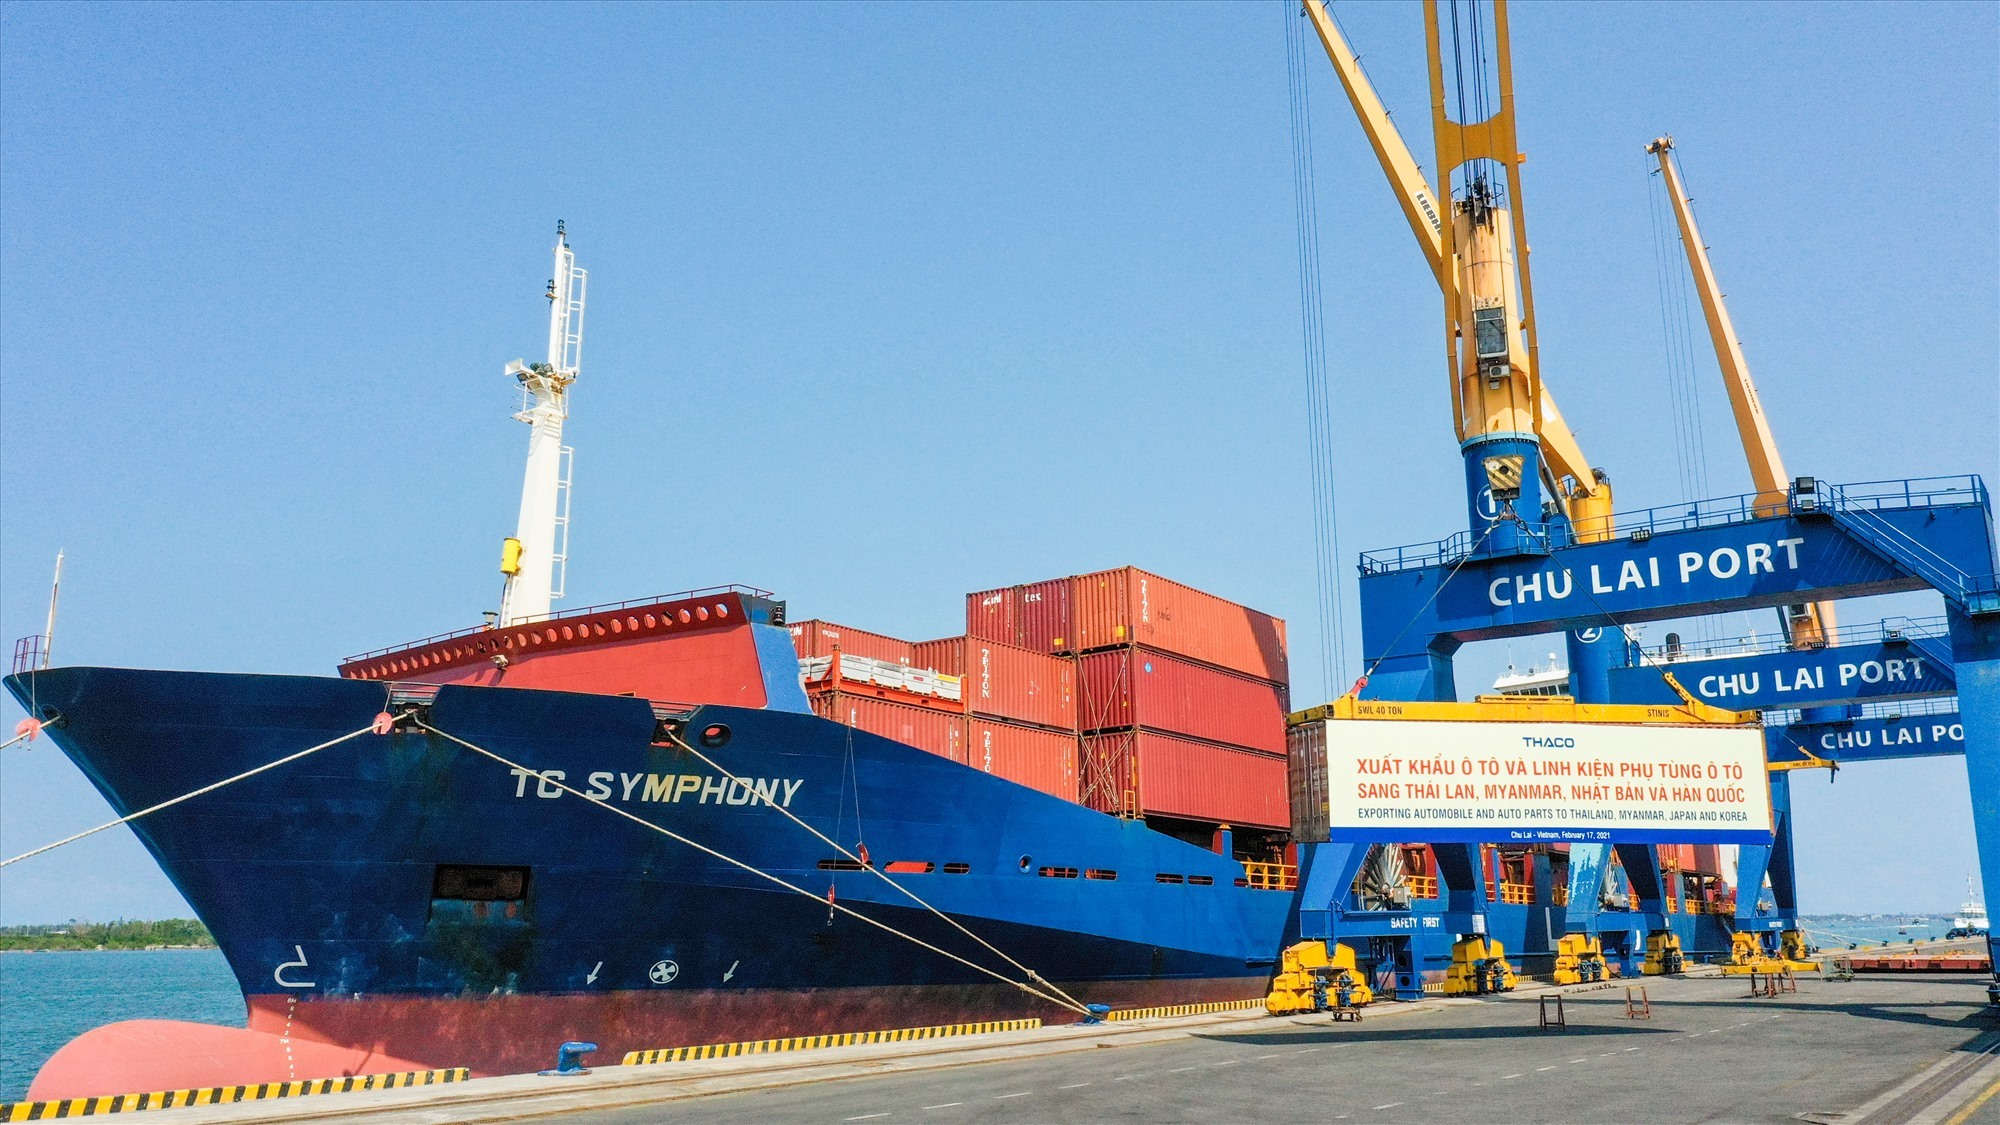 Containers of THACO's cars and spare parts to foreign markets at the start of the lunar new year 2021